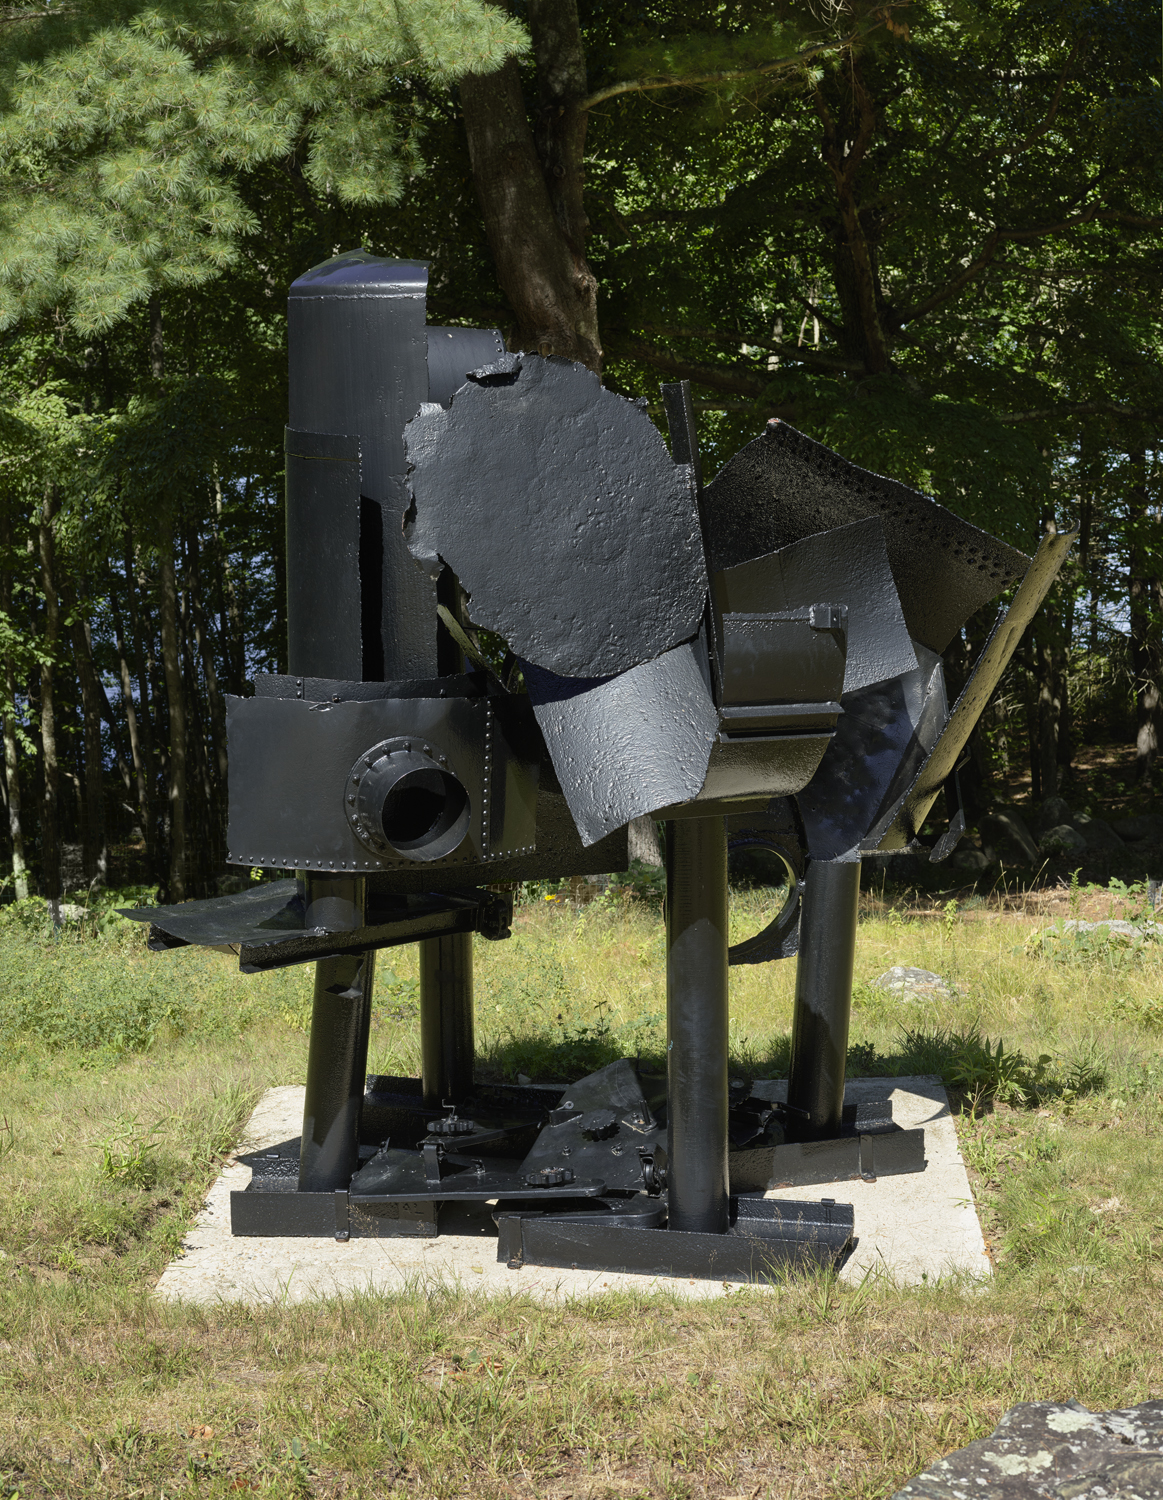 dark steel Sculpture with many patterns, in a field